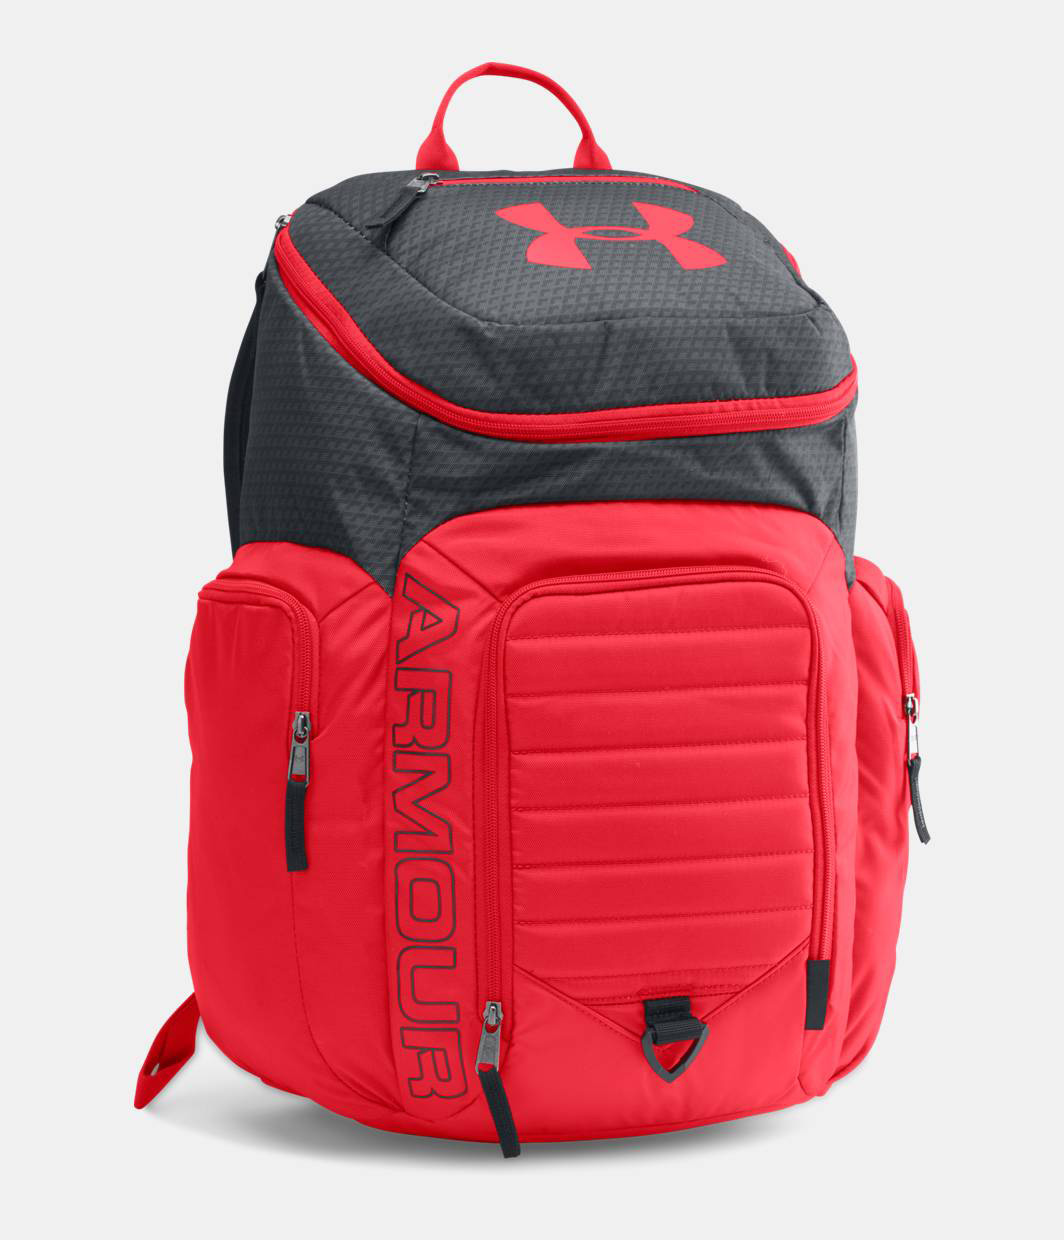 under armor basketball backpack under armour ua storm undeniable ii  backpack 1263963 ... 78741fc2e271c